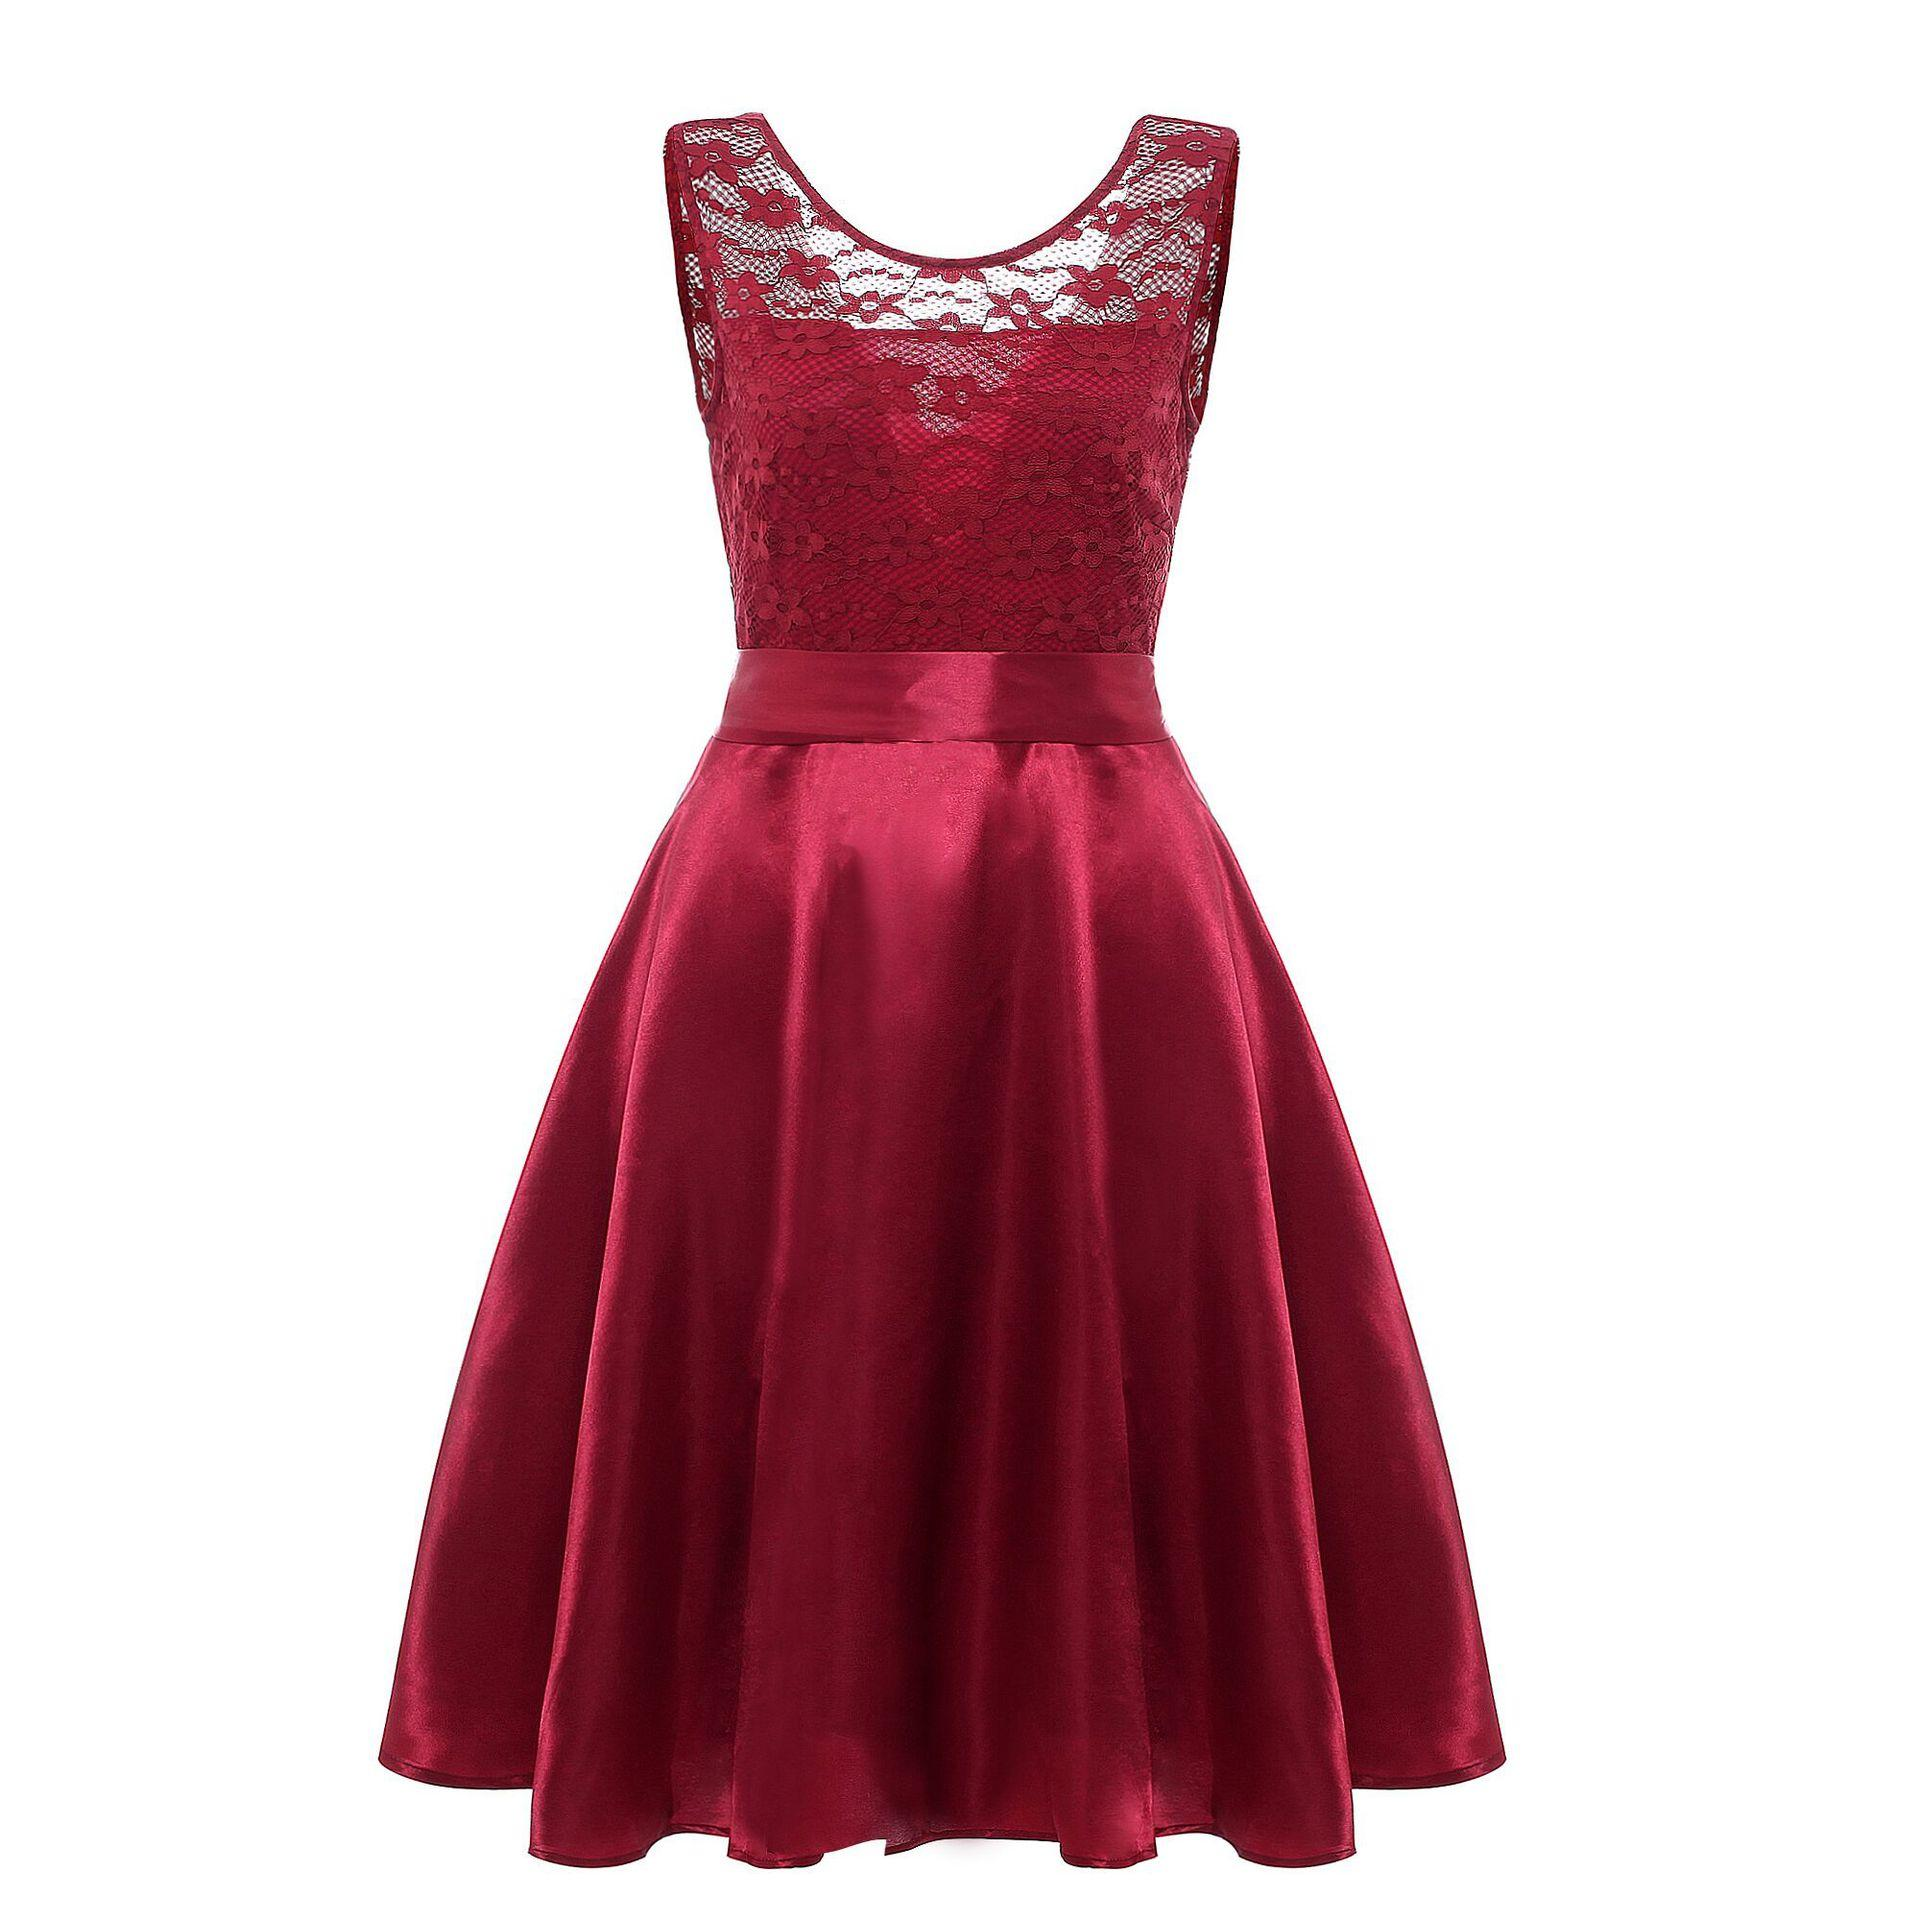 Simple Burgundy Satin Homecoming Dresses Cheap Grey Champagne A Line Knee Length Short Cocktail Party Dress 2019